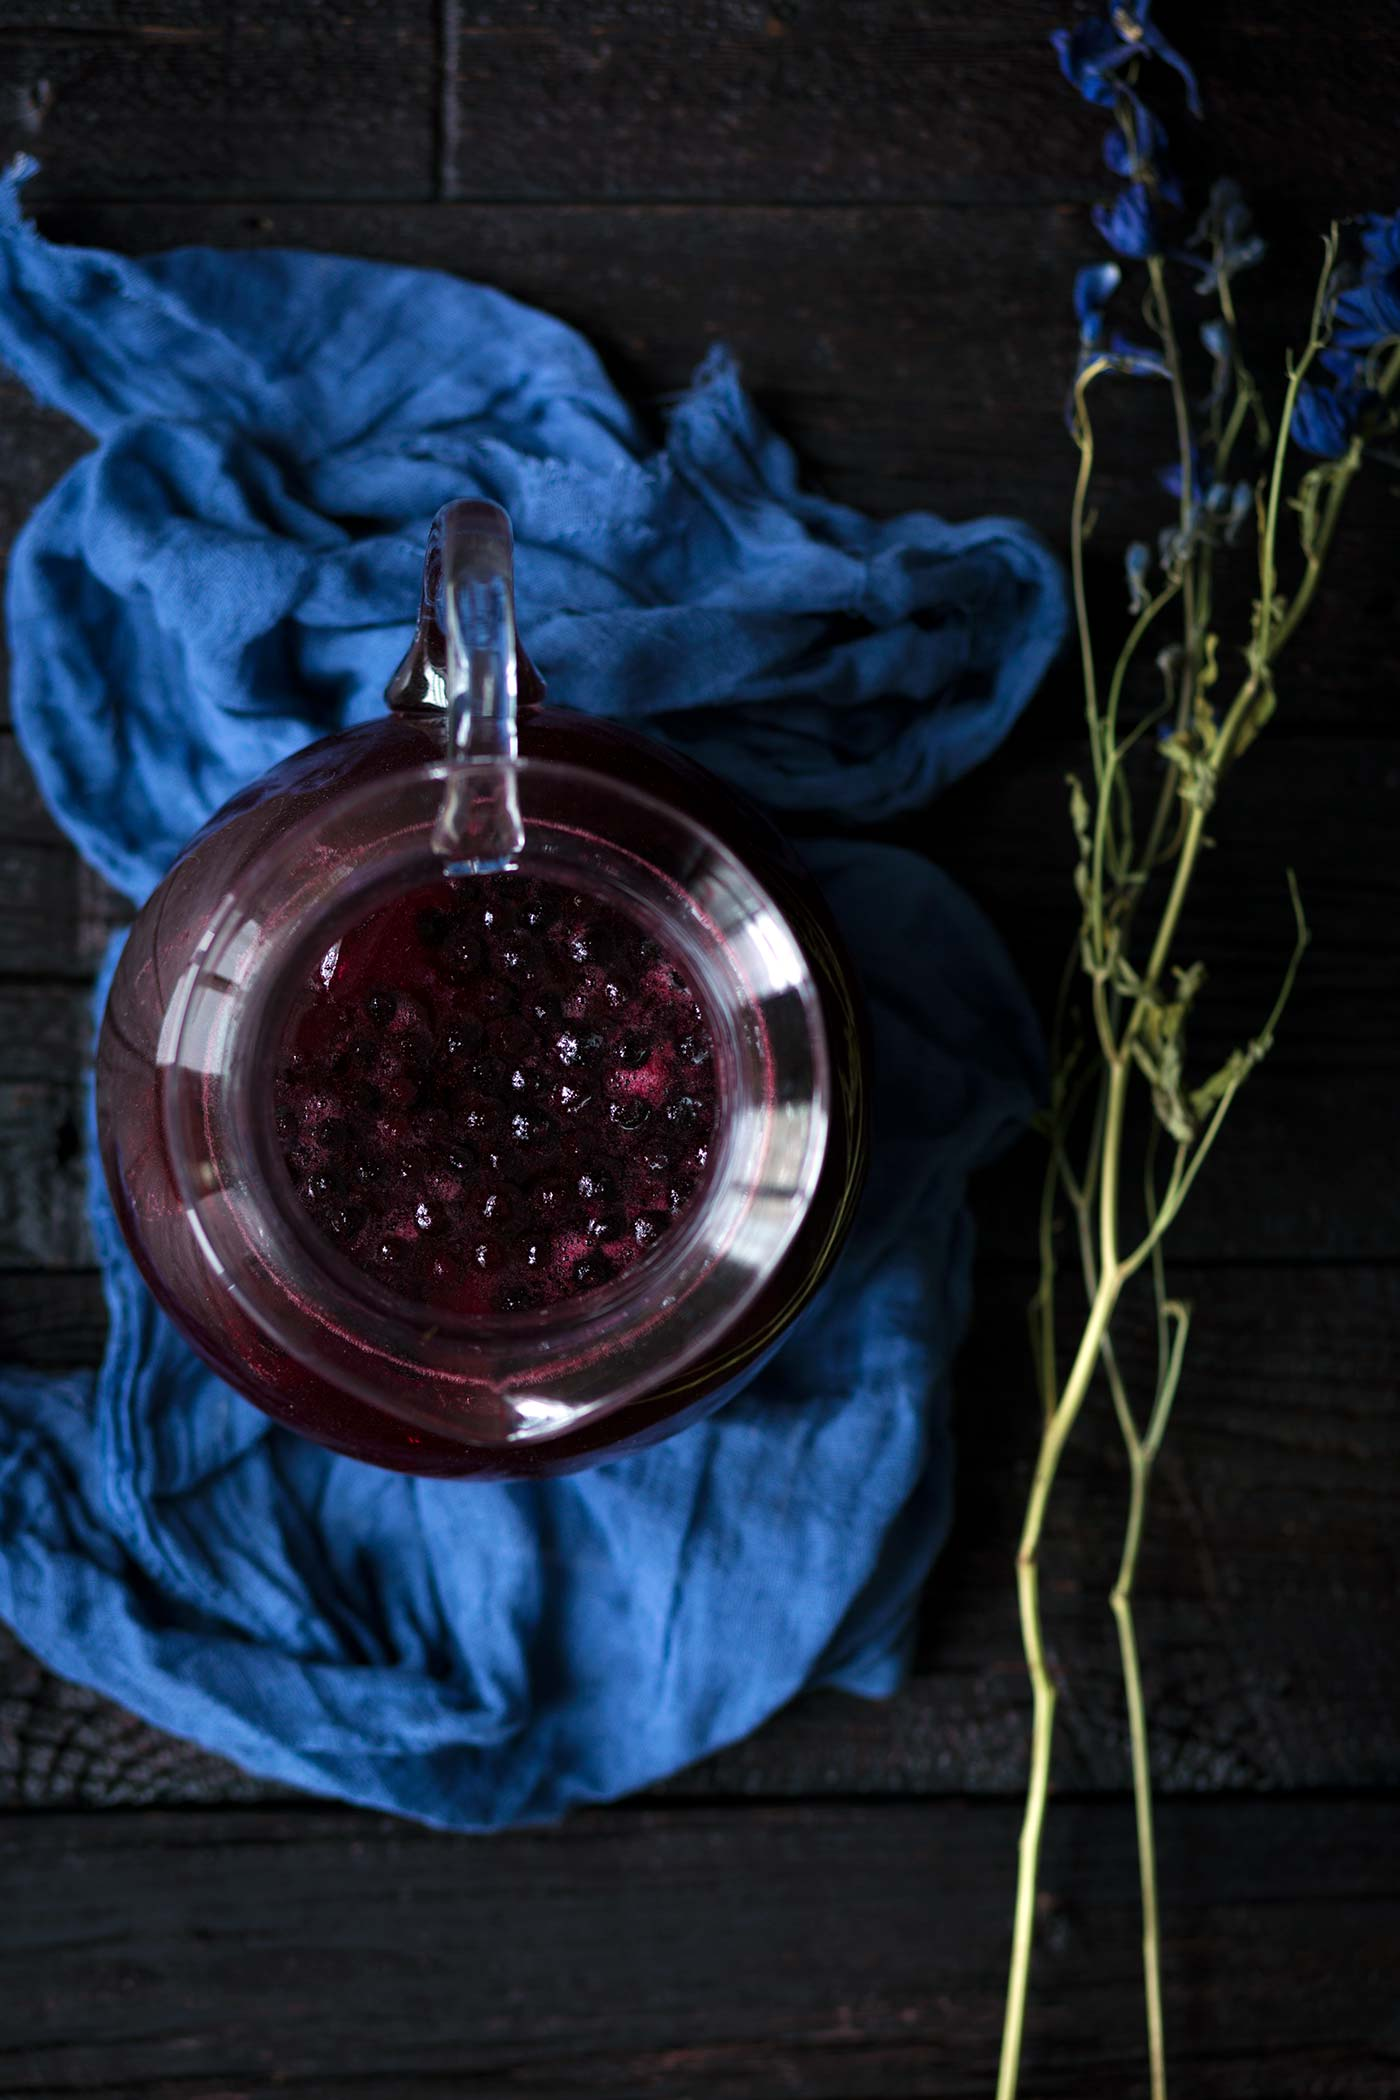 This Wild Blueberry Lemon Spritzer is a healthy, refreshing drink that comes together quickly and is perfect for entertaining. Get the recipe from Savory Simple.